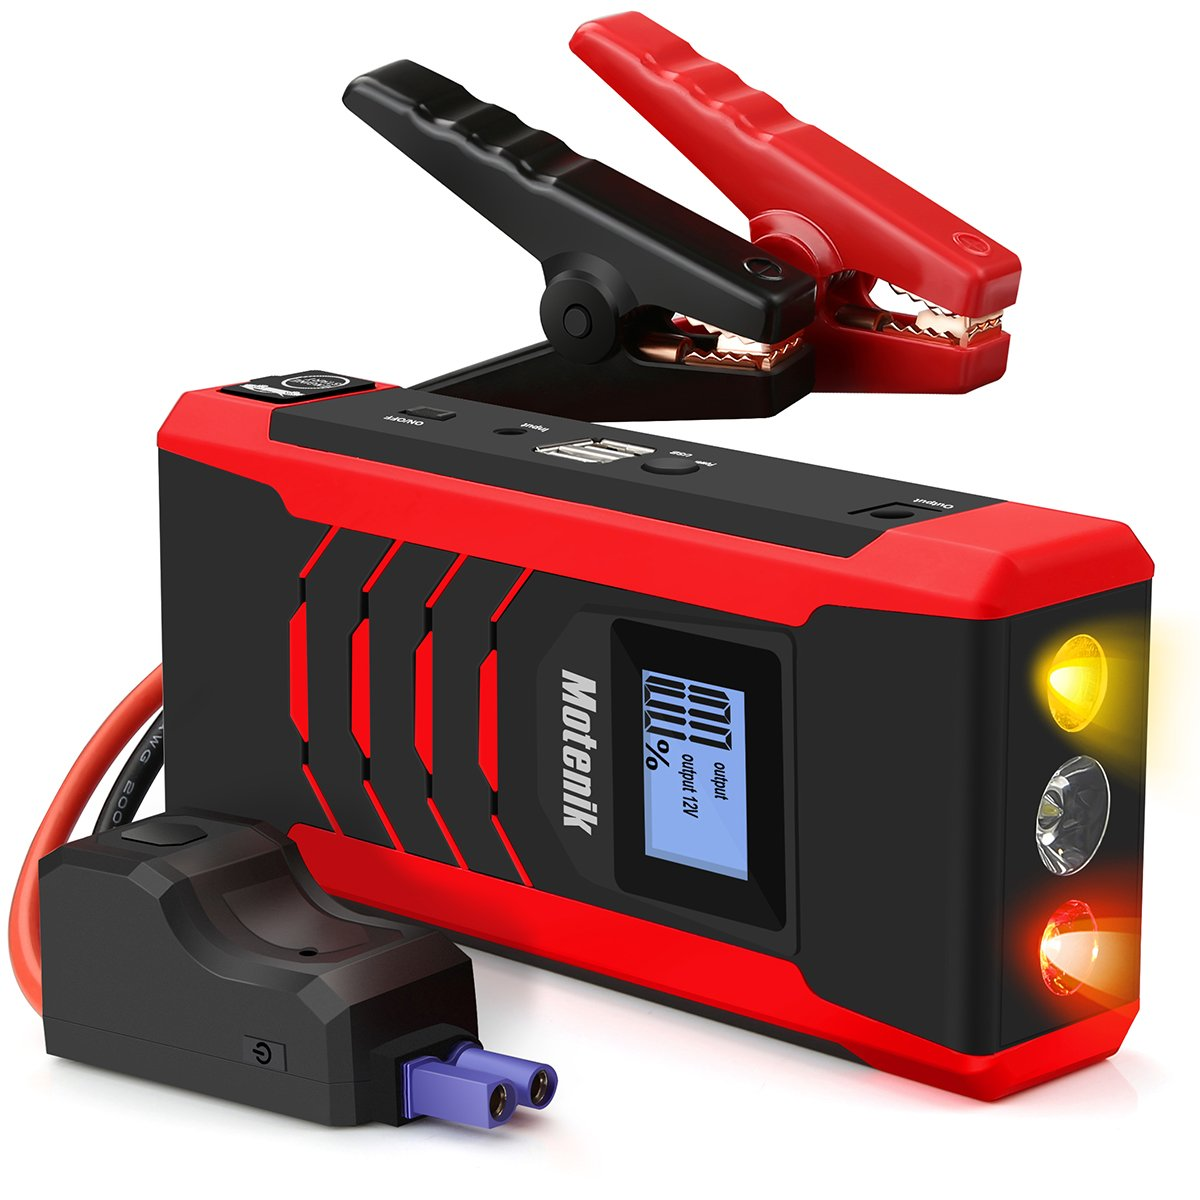 800A Peak Jump Starter with Emergency Light 4 Modes Motenik Car Jump Starter(Up to 6.5L Gas or 5.0L Diesel Engines) Auto Battery Booster Dual USB Power